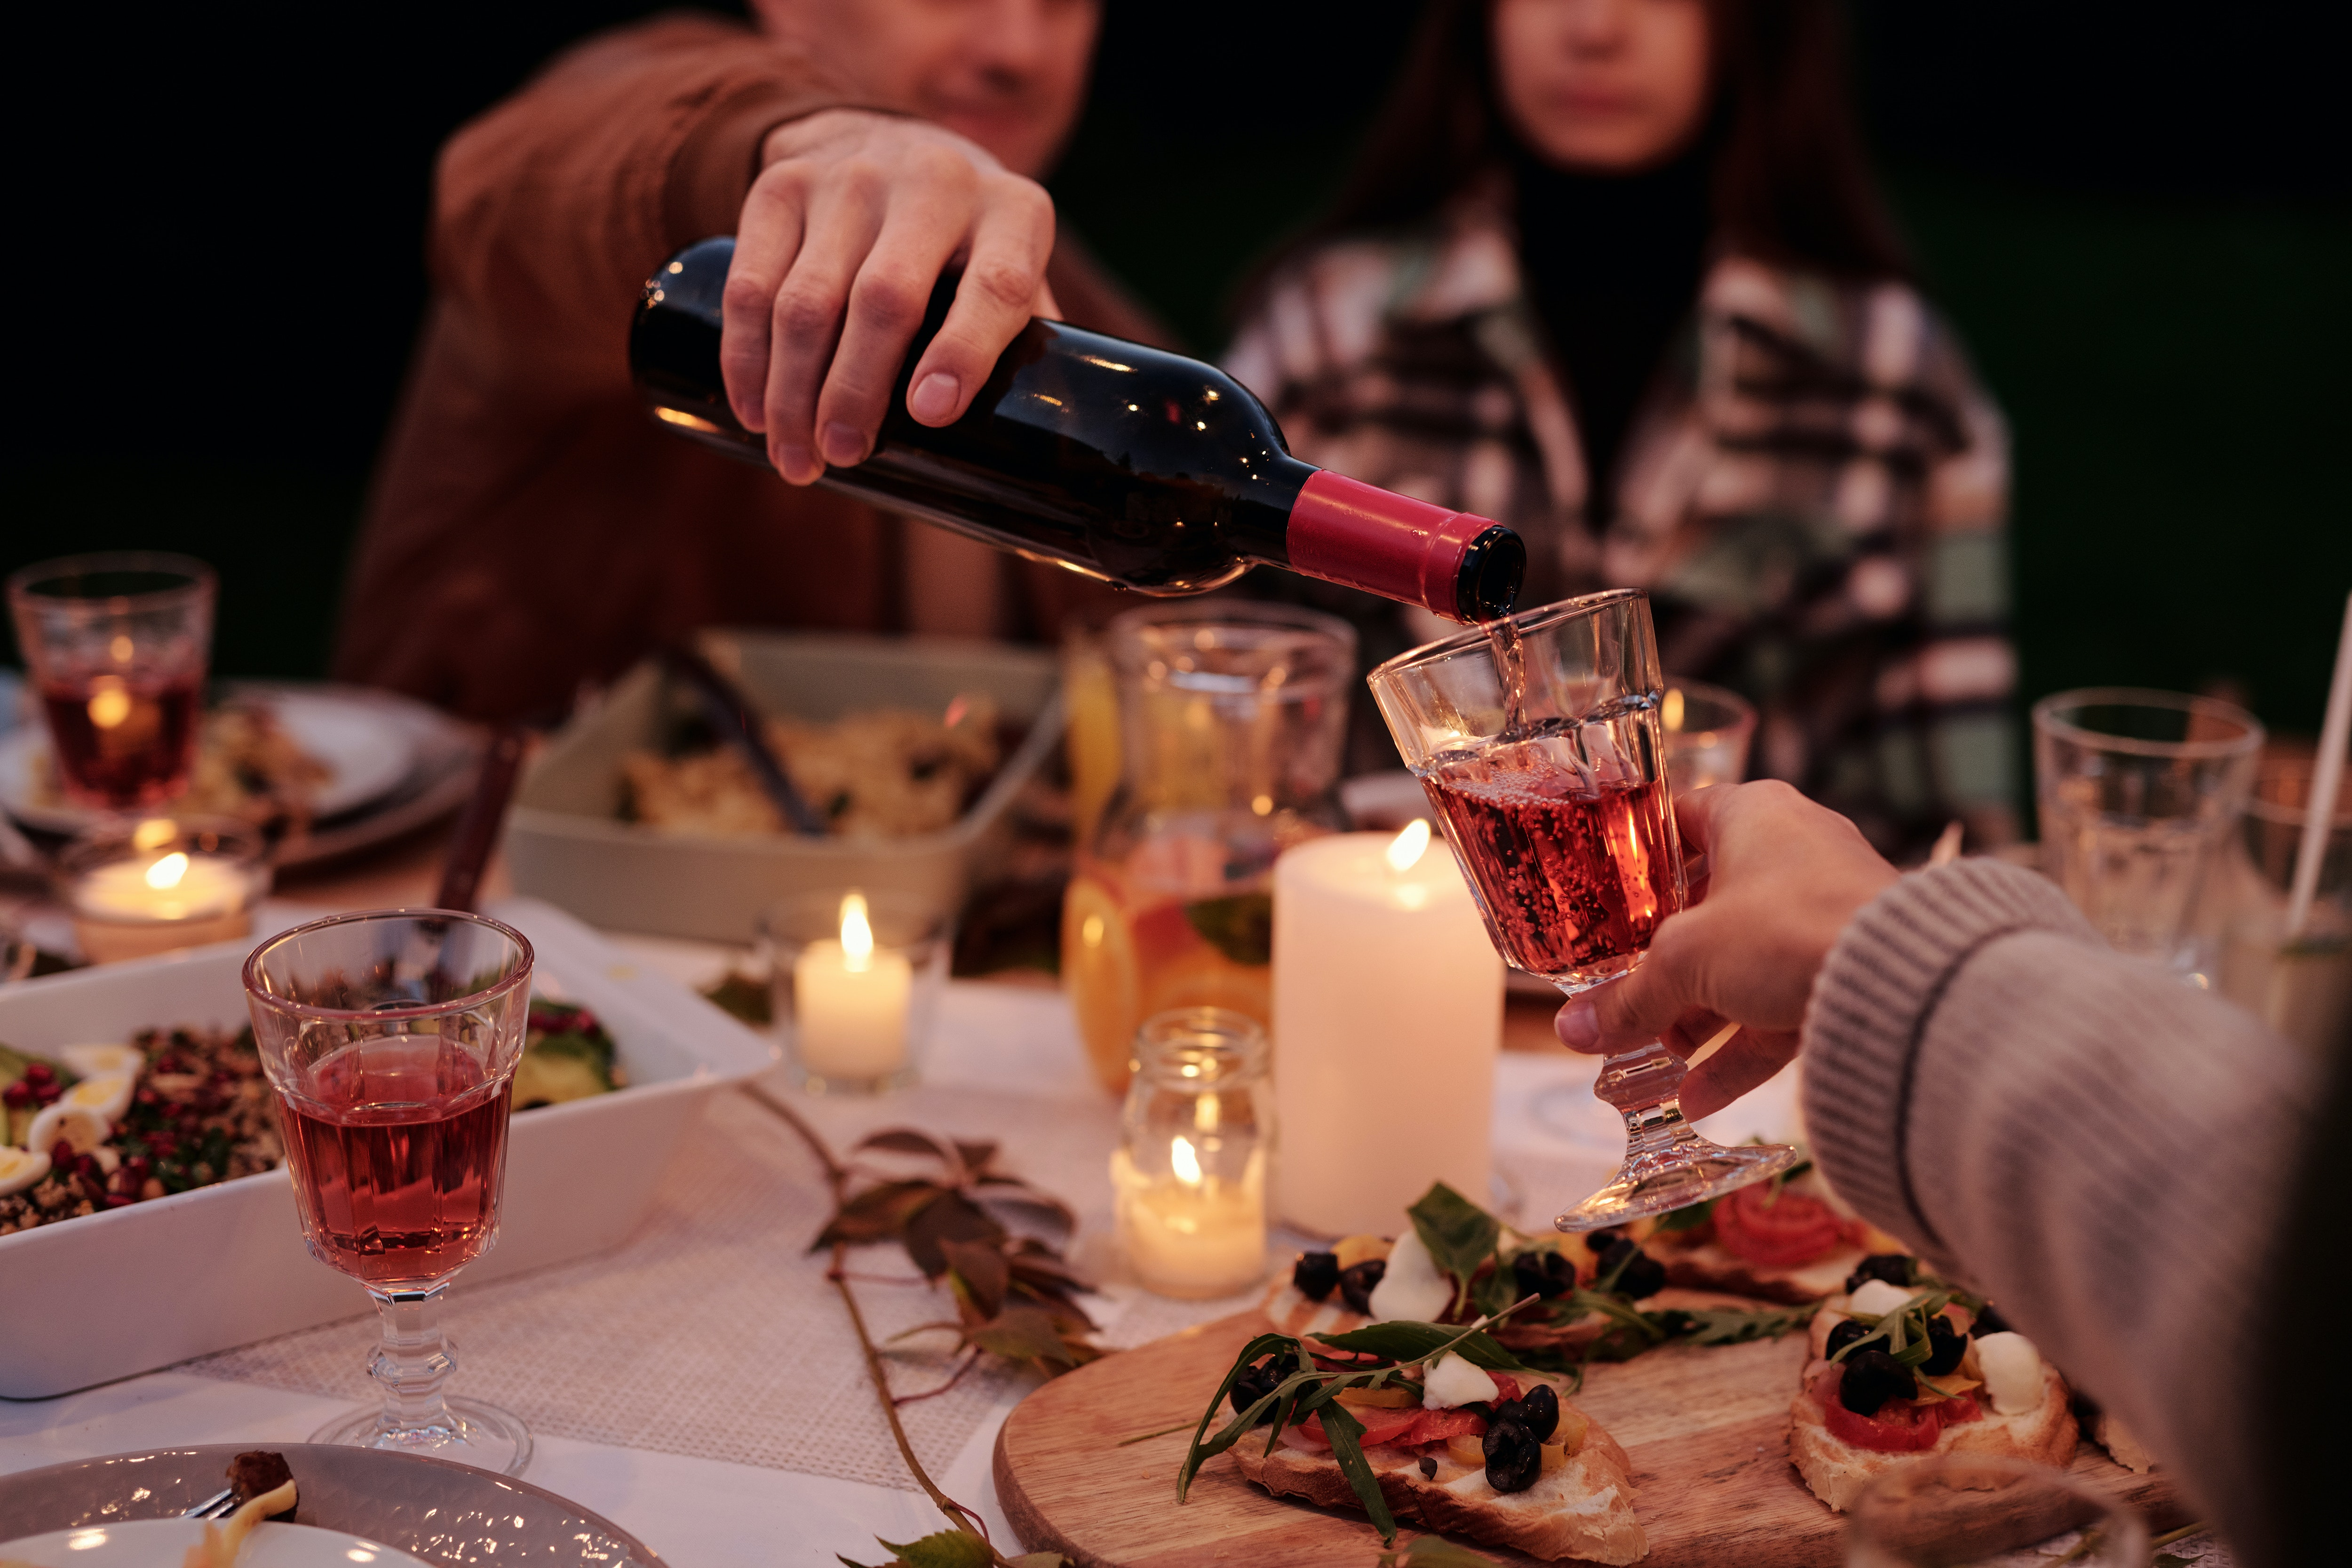 Dinner table  with a rose wine